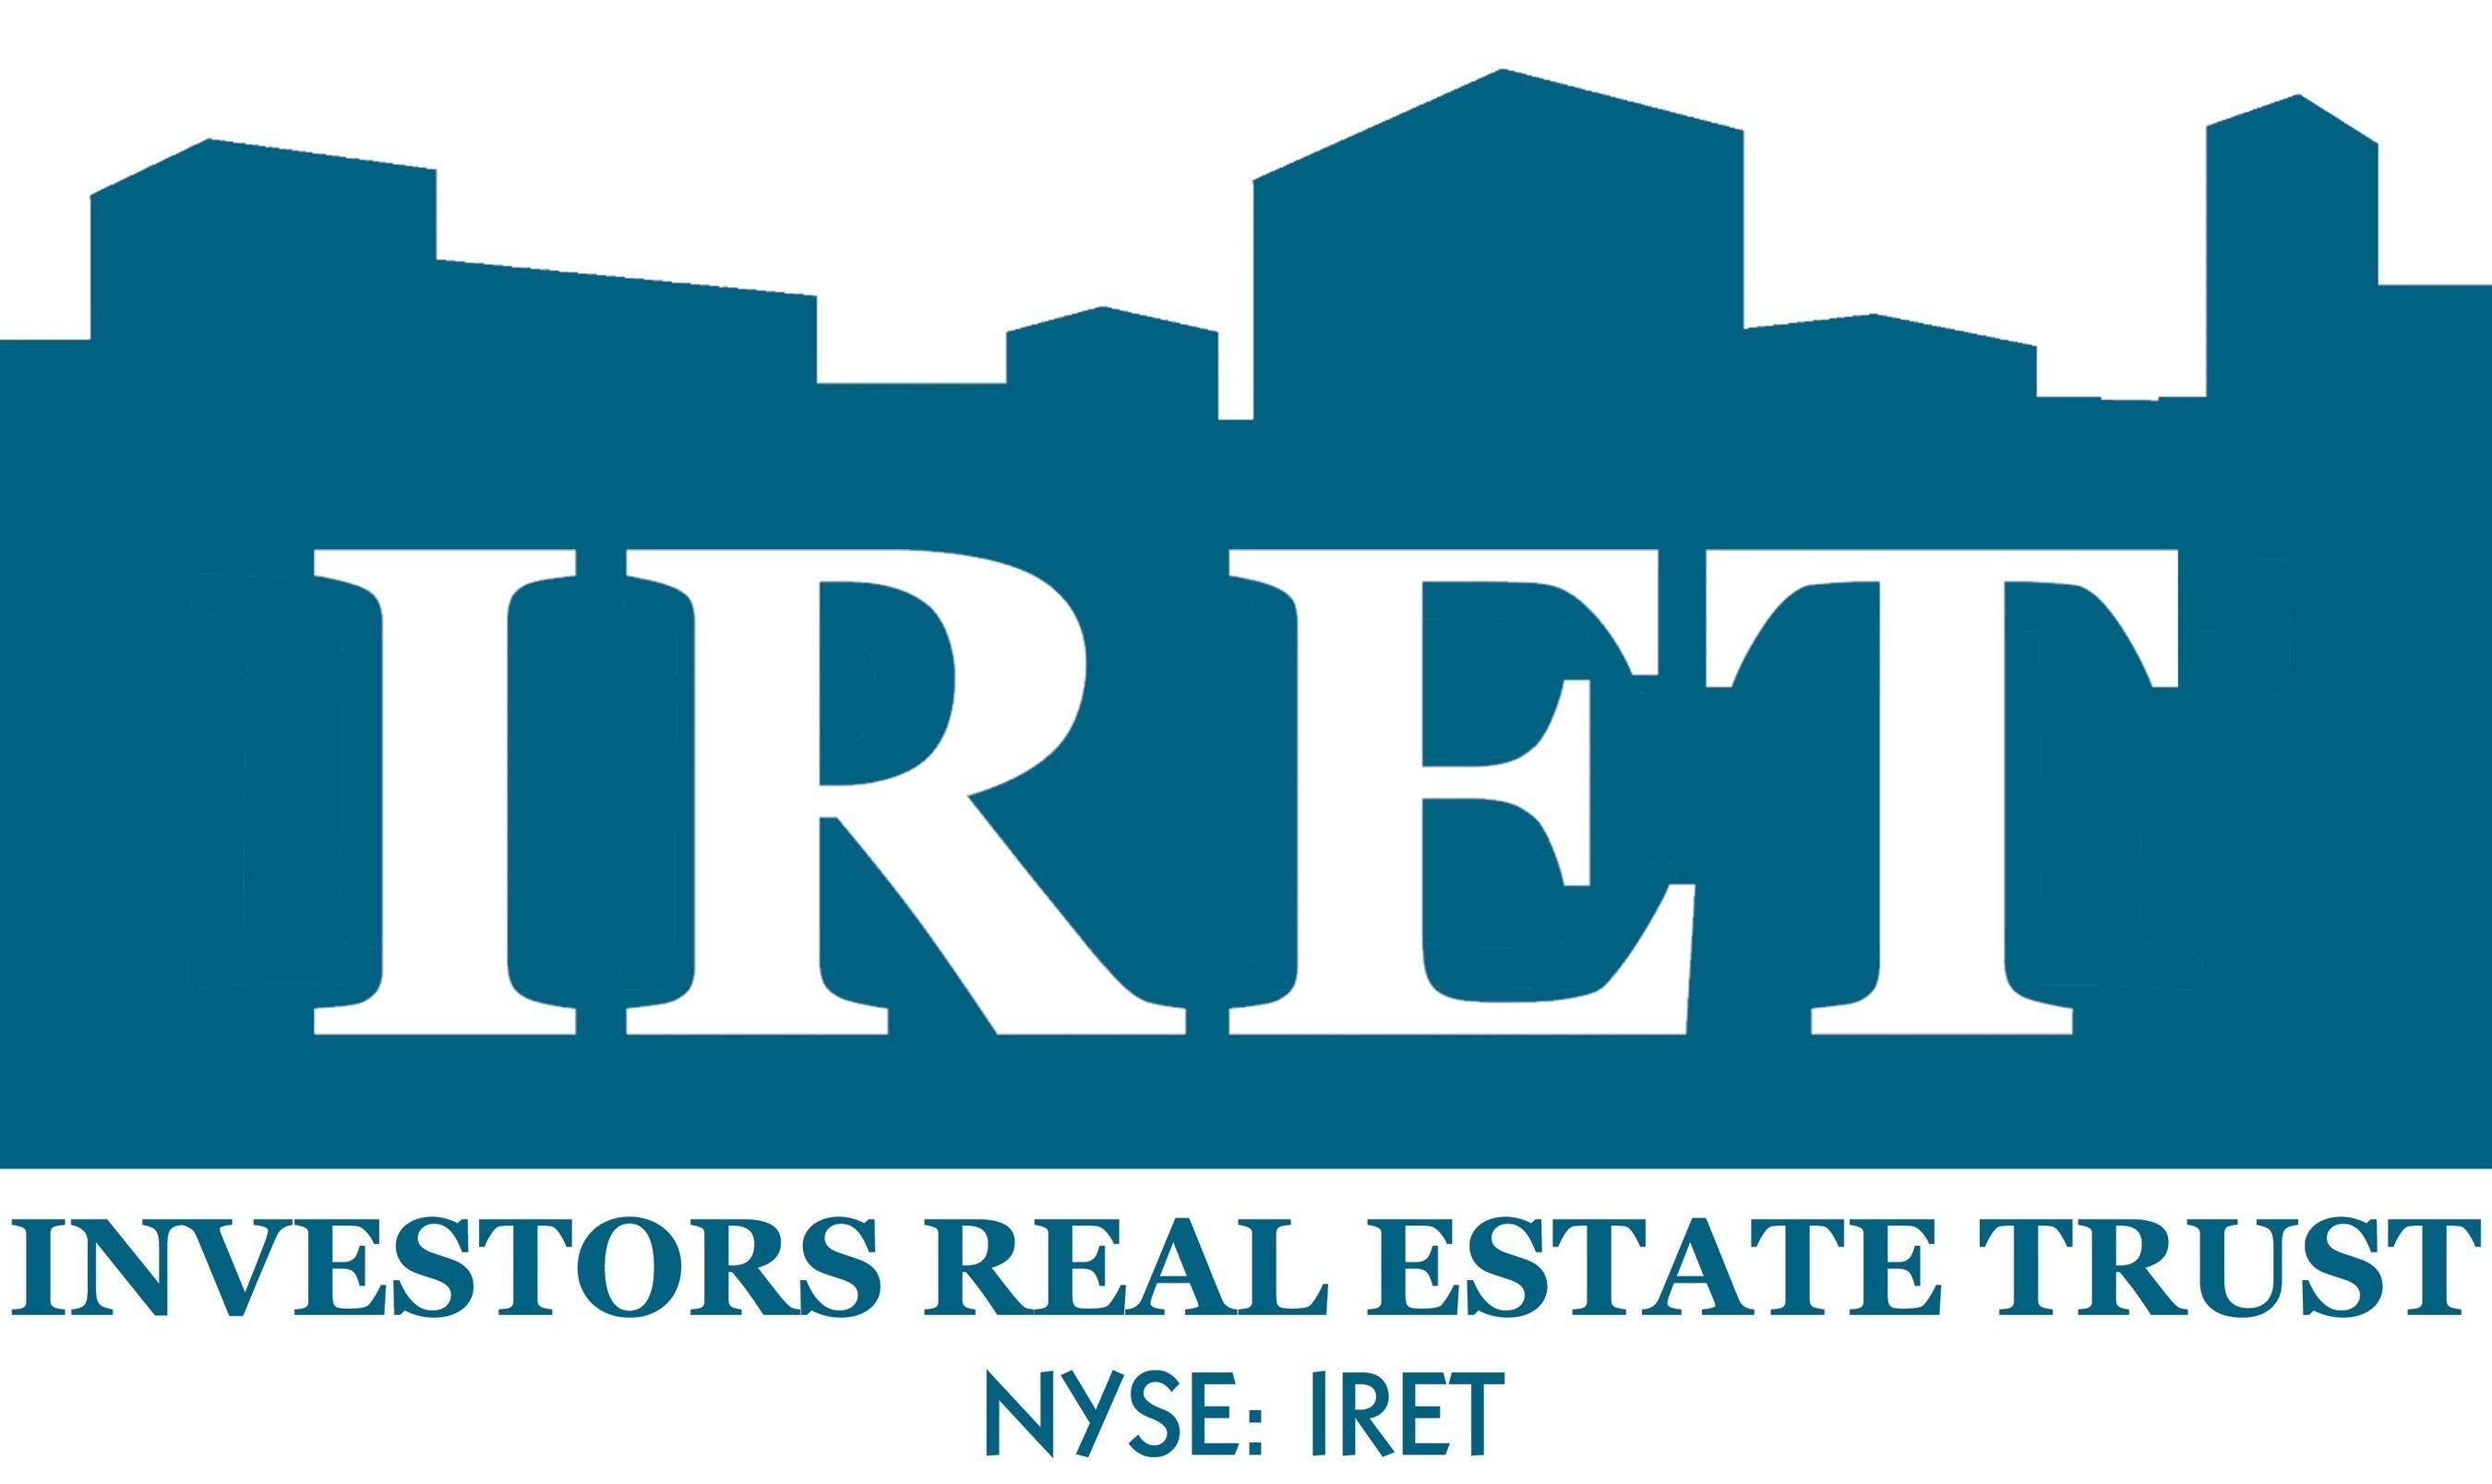 Investors Real Estate Trust Announces Appointment of Jeff Caira as a Trustee